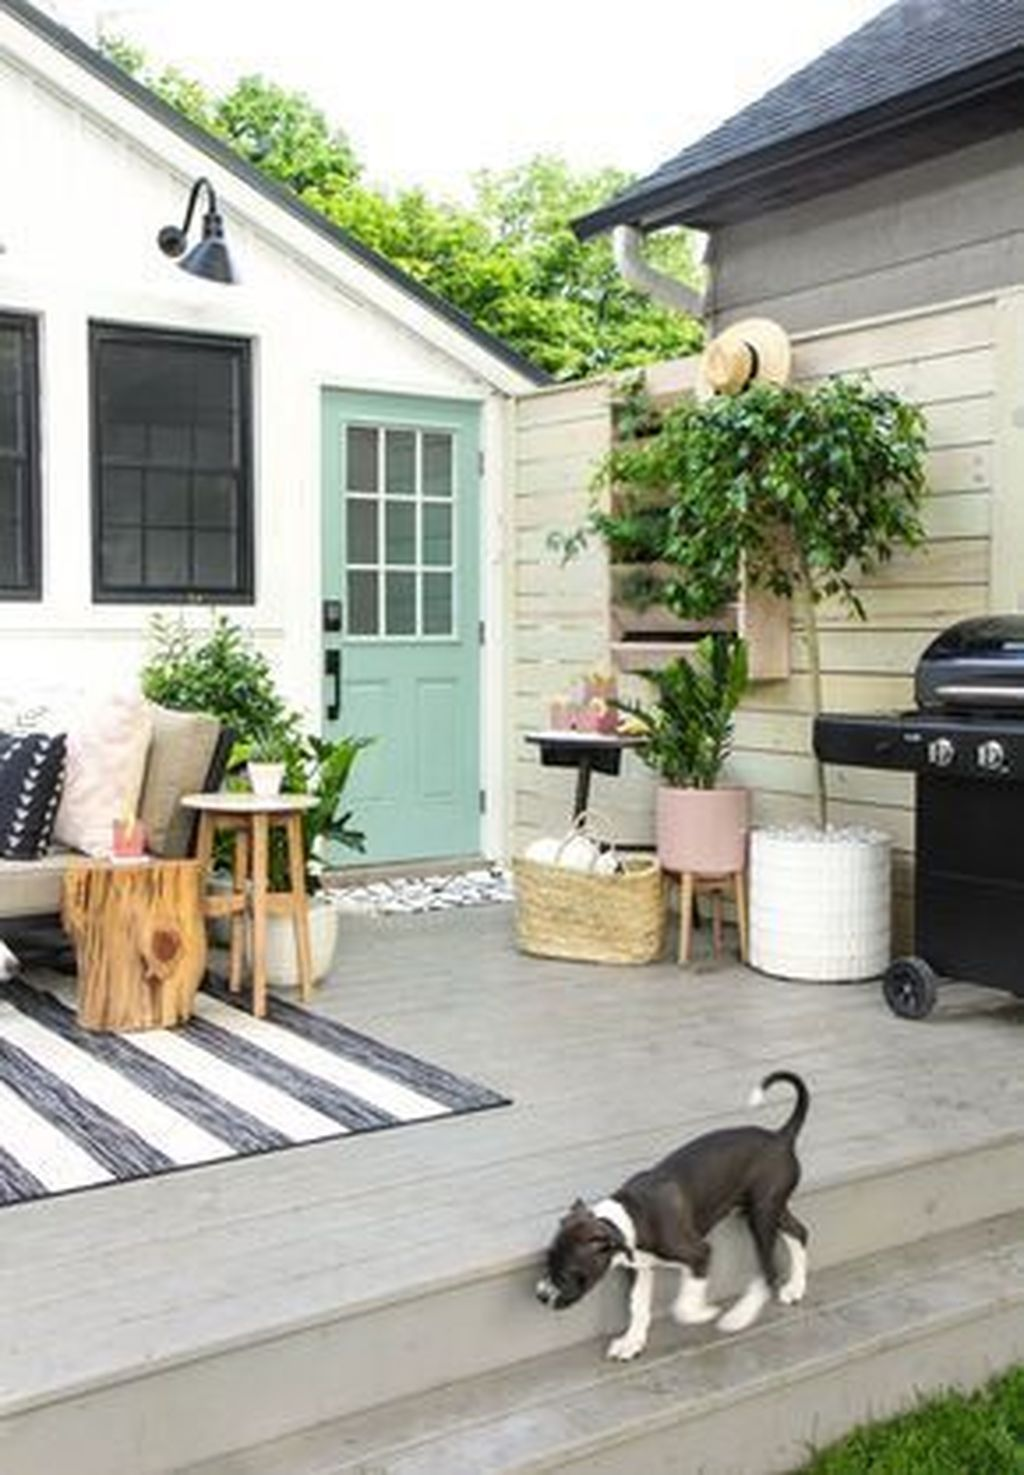 37 Amazing Small Backyard Makeovers Ideas On A Budget #backyardmakeover